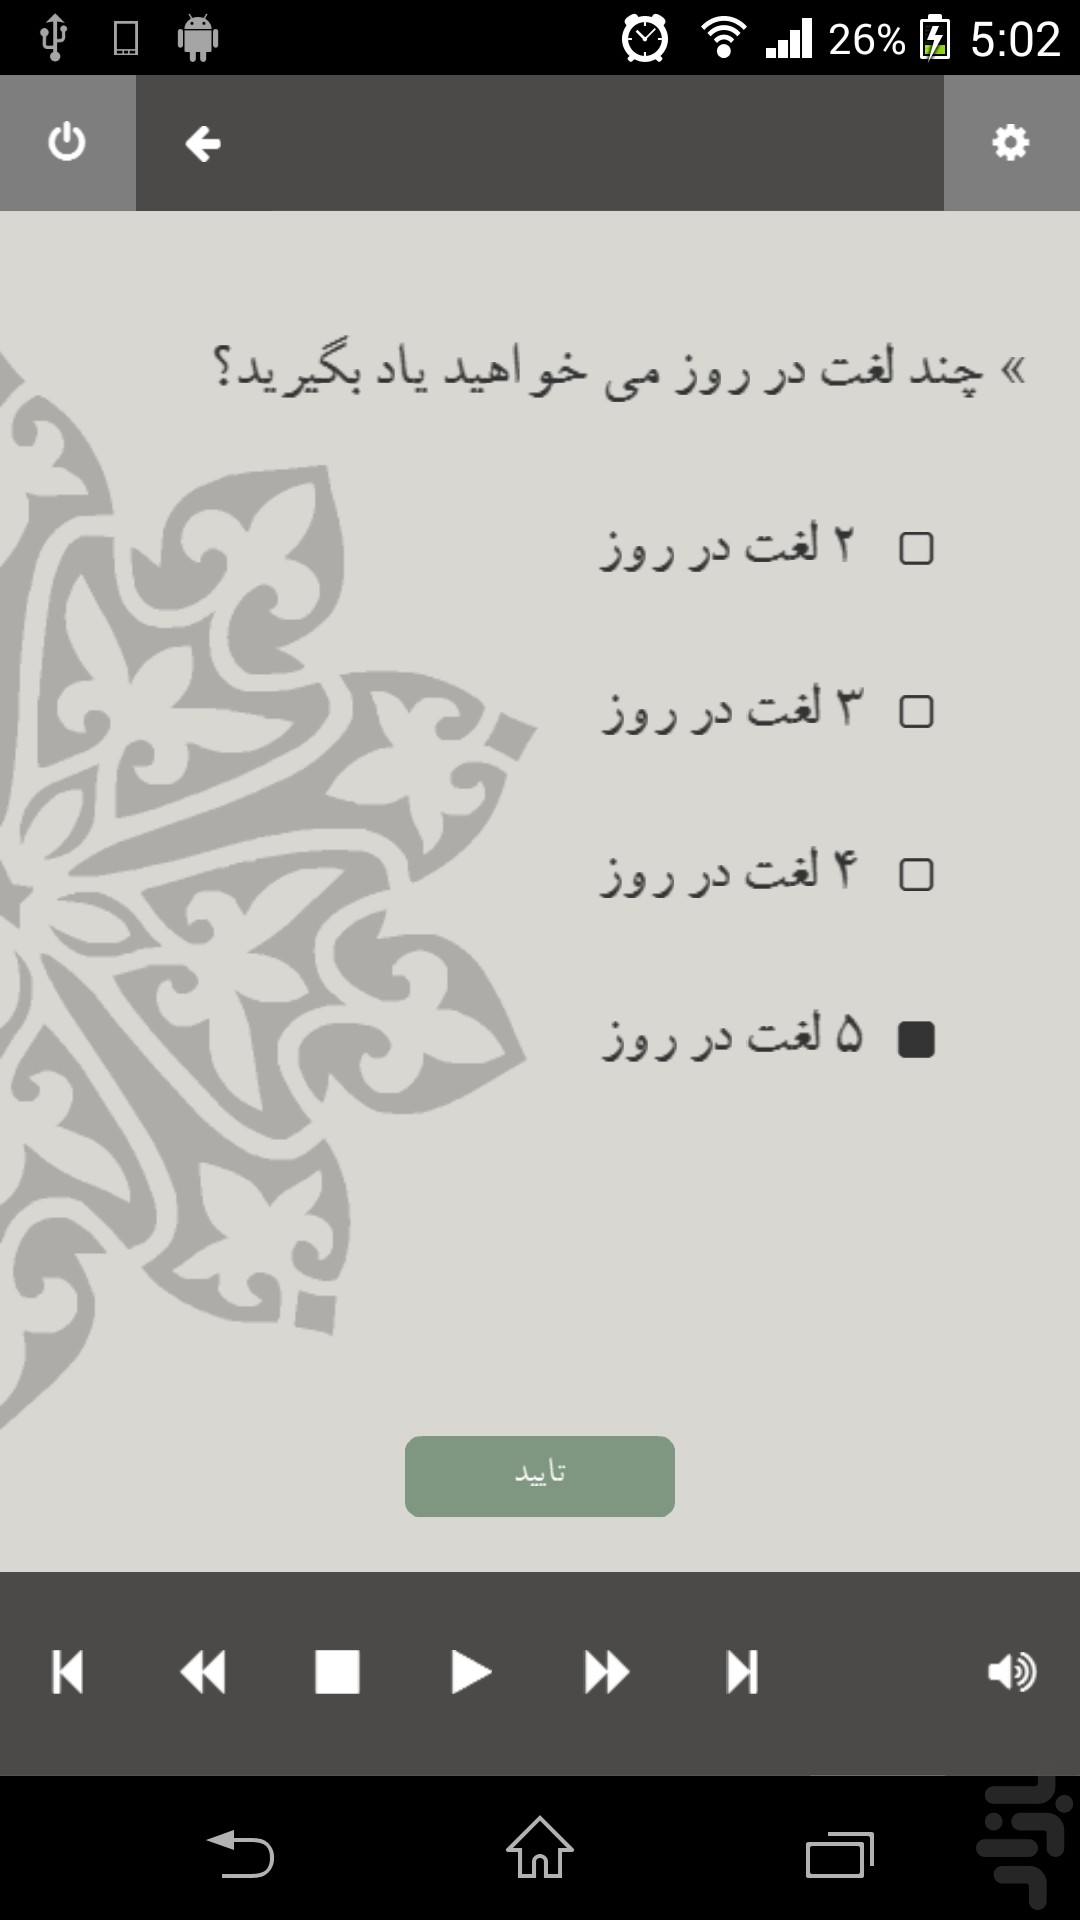 اسماء الحسنی screenshot